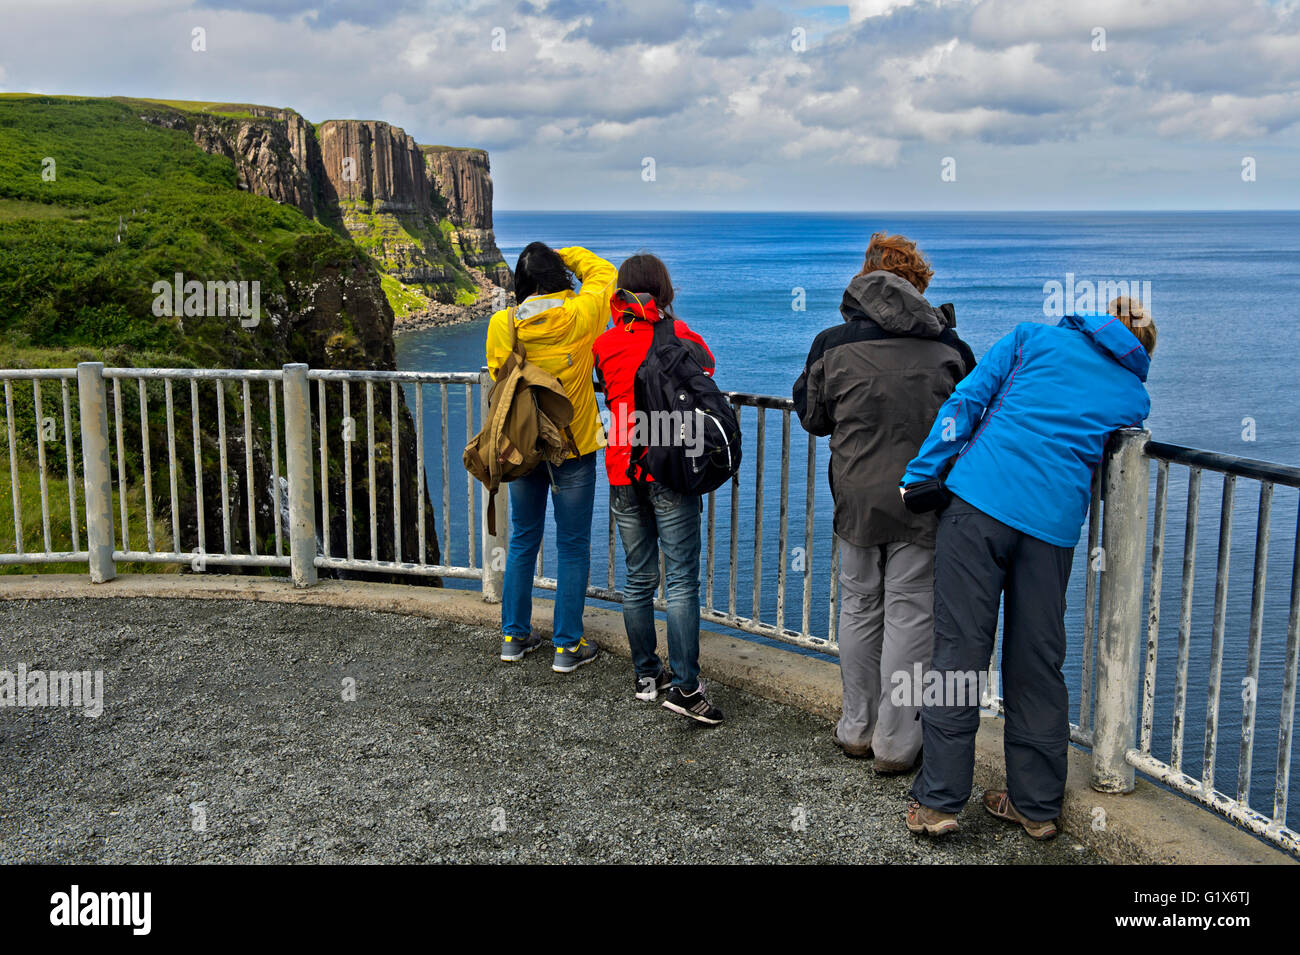 Tourists on the view point of the Kilt Rock Basaltic cliffs at Staffin, Isle of Skye, Scotland, United Kingdom - Stock Image